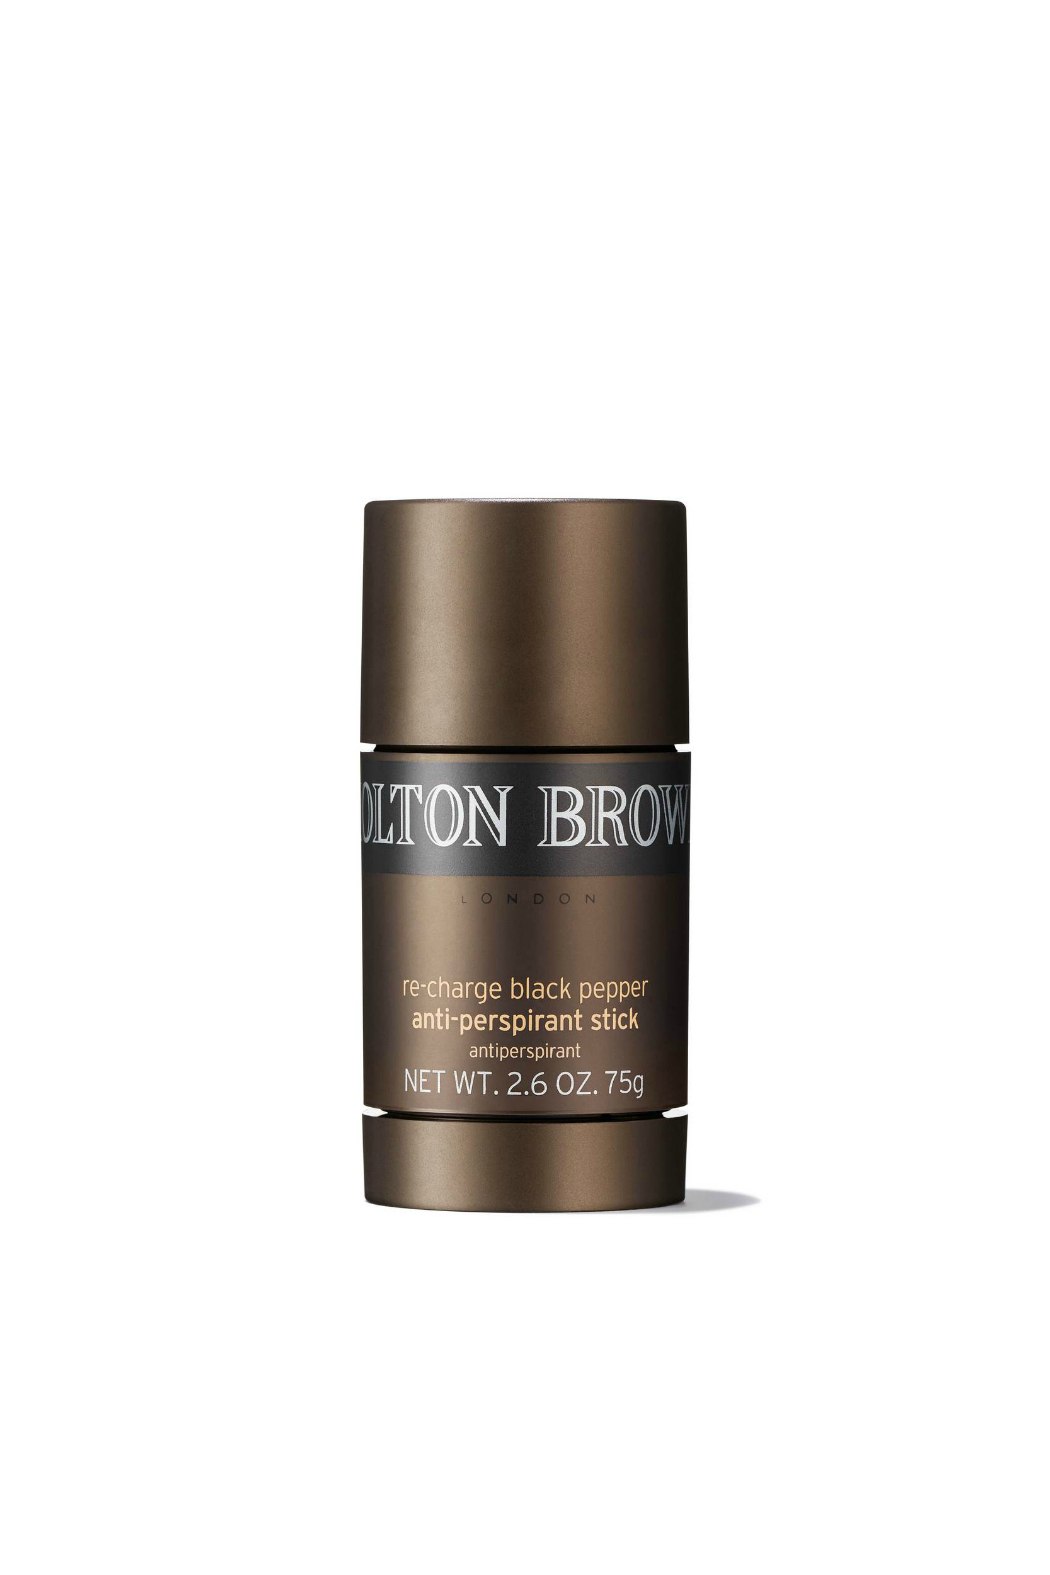 Molton Brown Re-charge Black Pepper Anti-perspirant Stick - Main Image